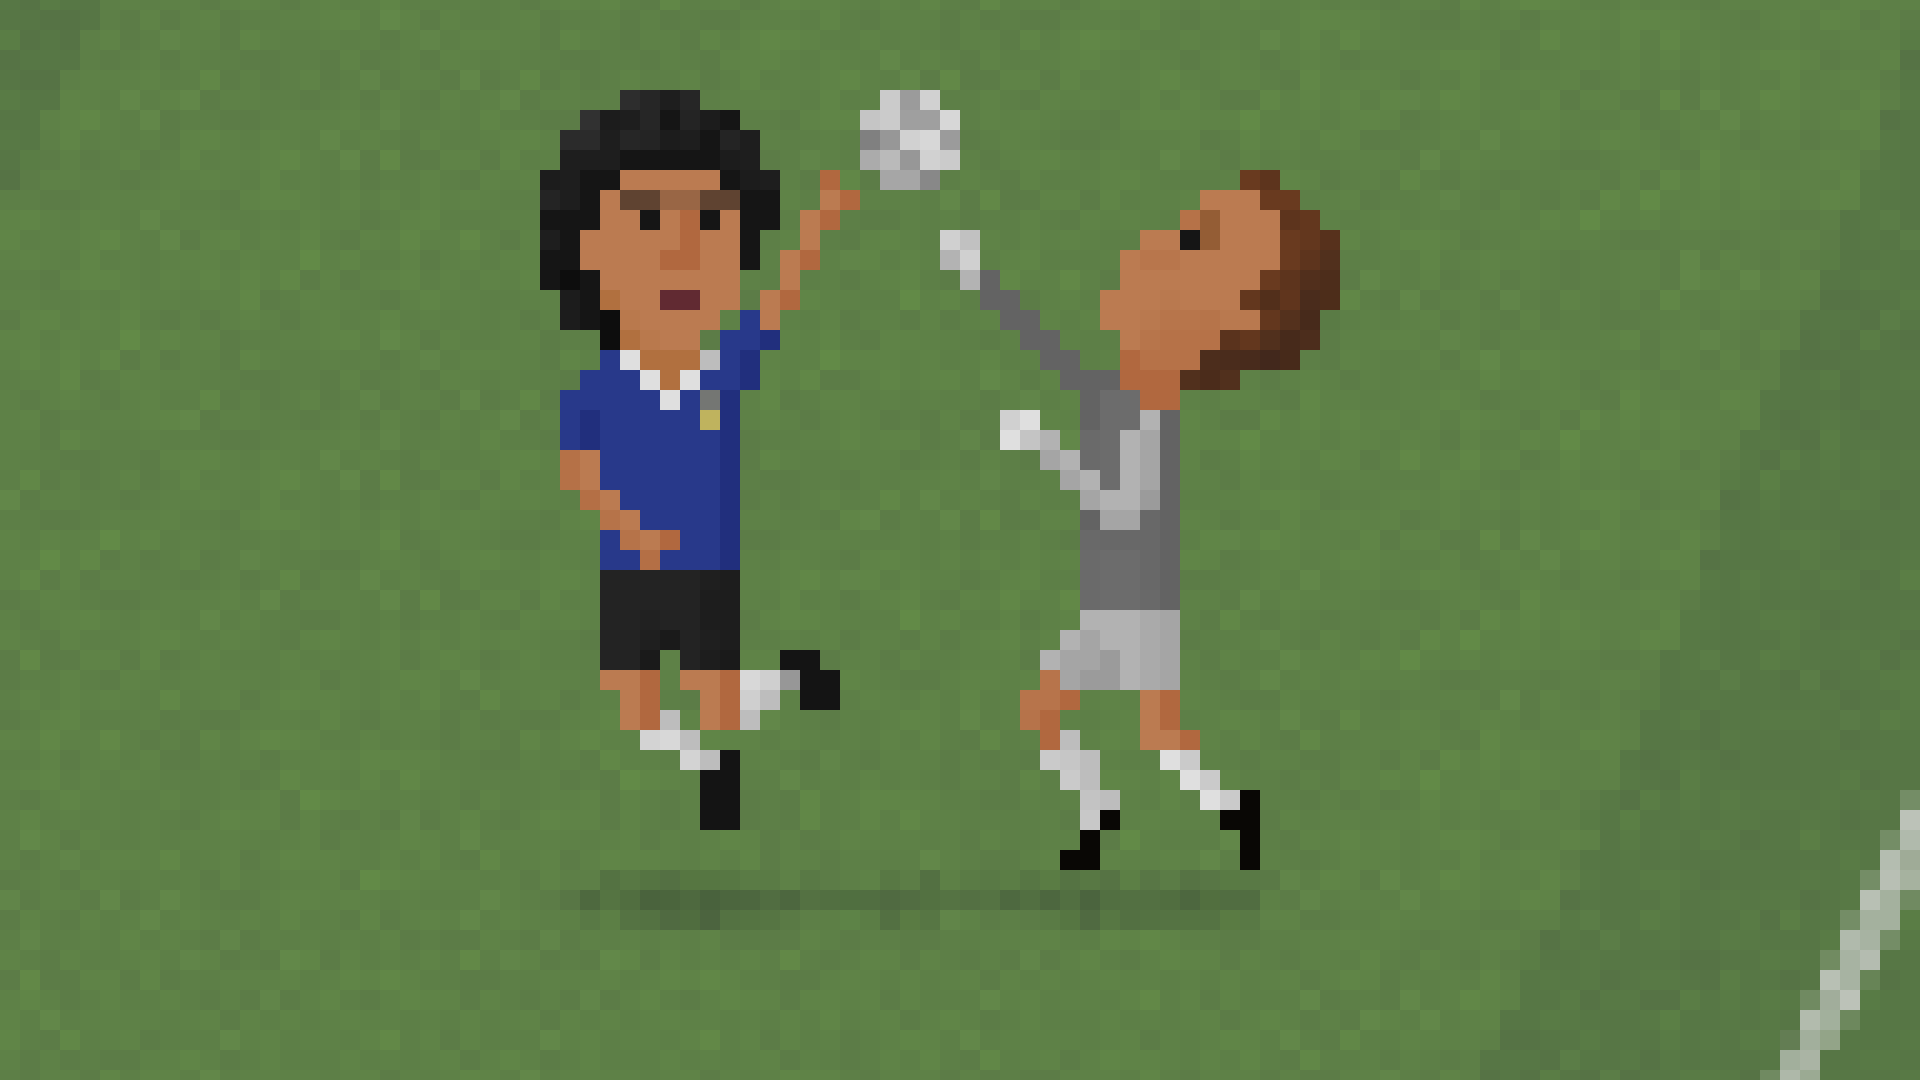 Maradona's hand of god in 8bit